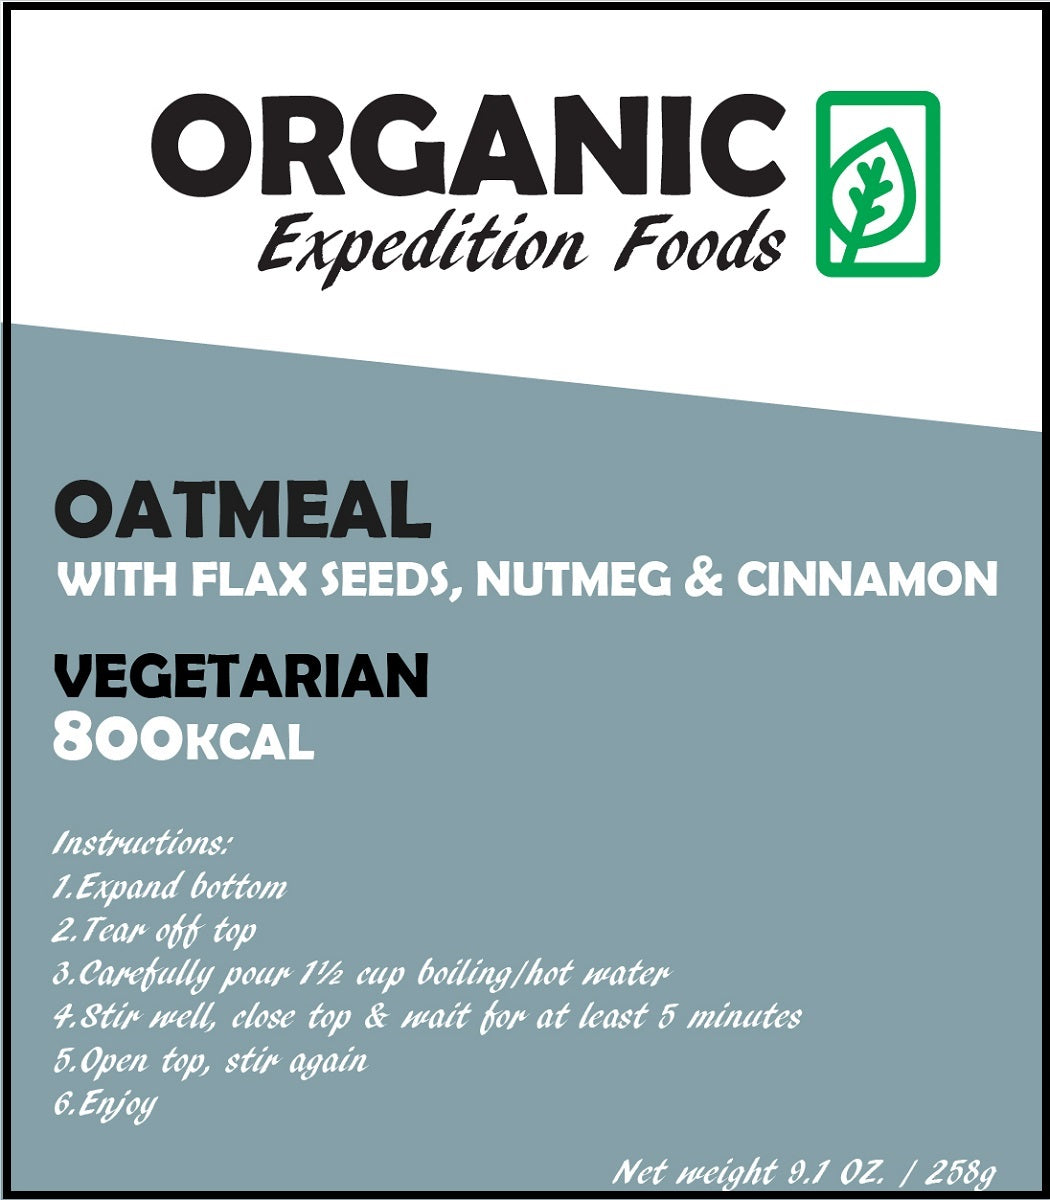 OATMEAL with Flax Seeds, Nutmeg & Cinnamon - 400 or 800kCal